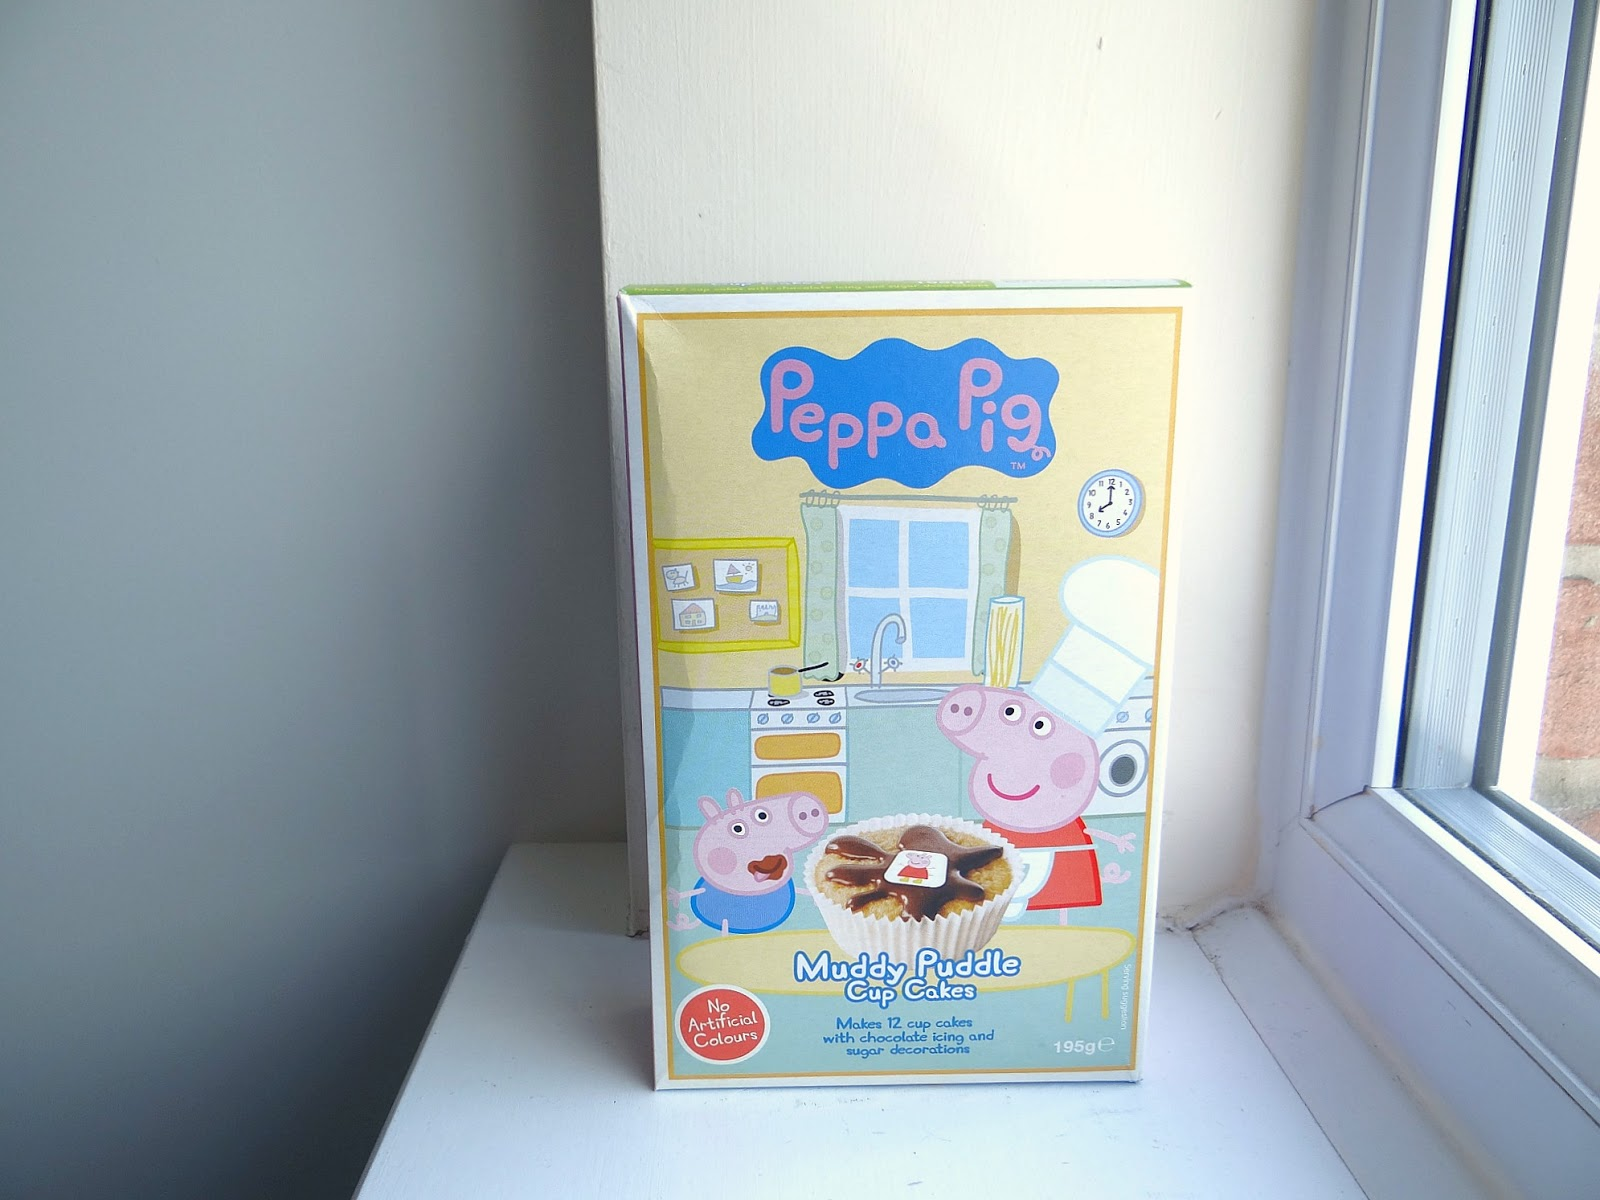 Peppa Pig Baking Kit, chocolate cupcakes kit for children, baking with young children